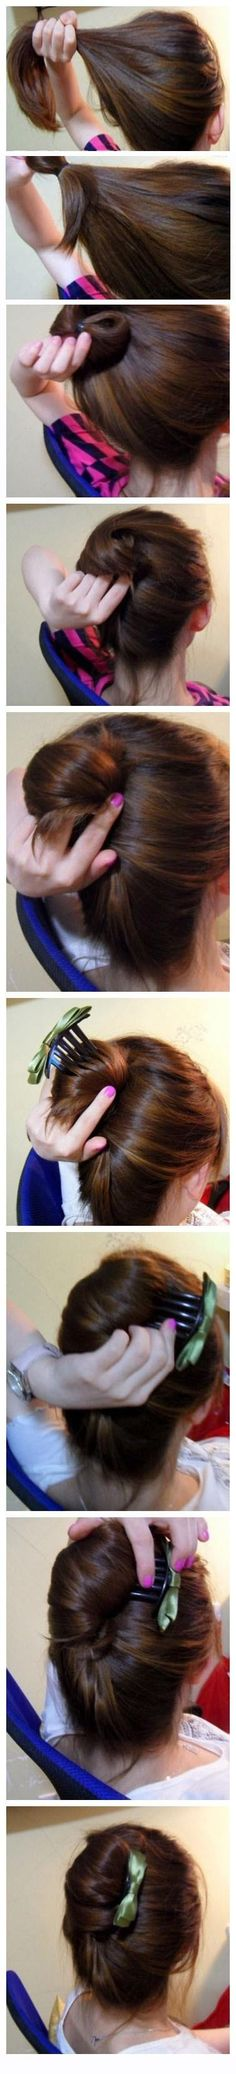 easy way to twist up your hair